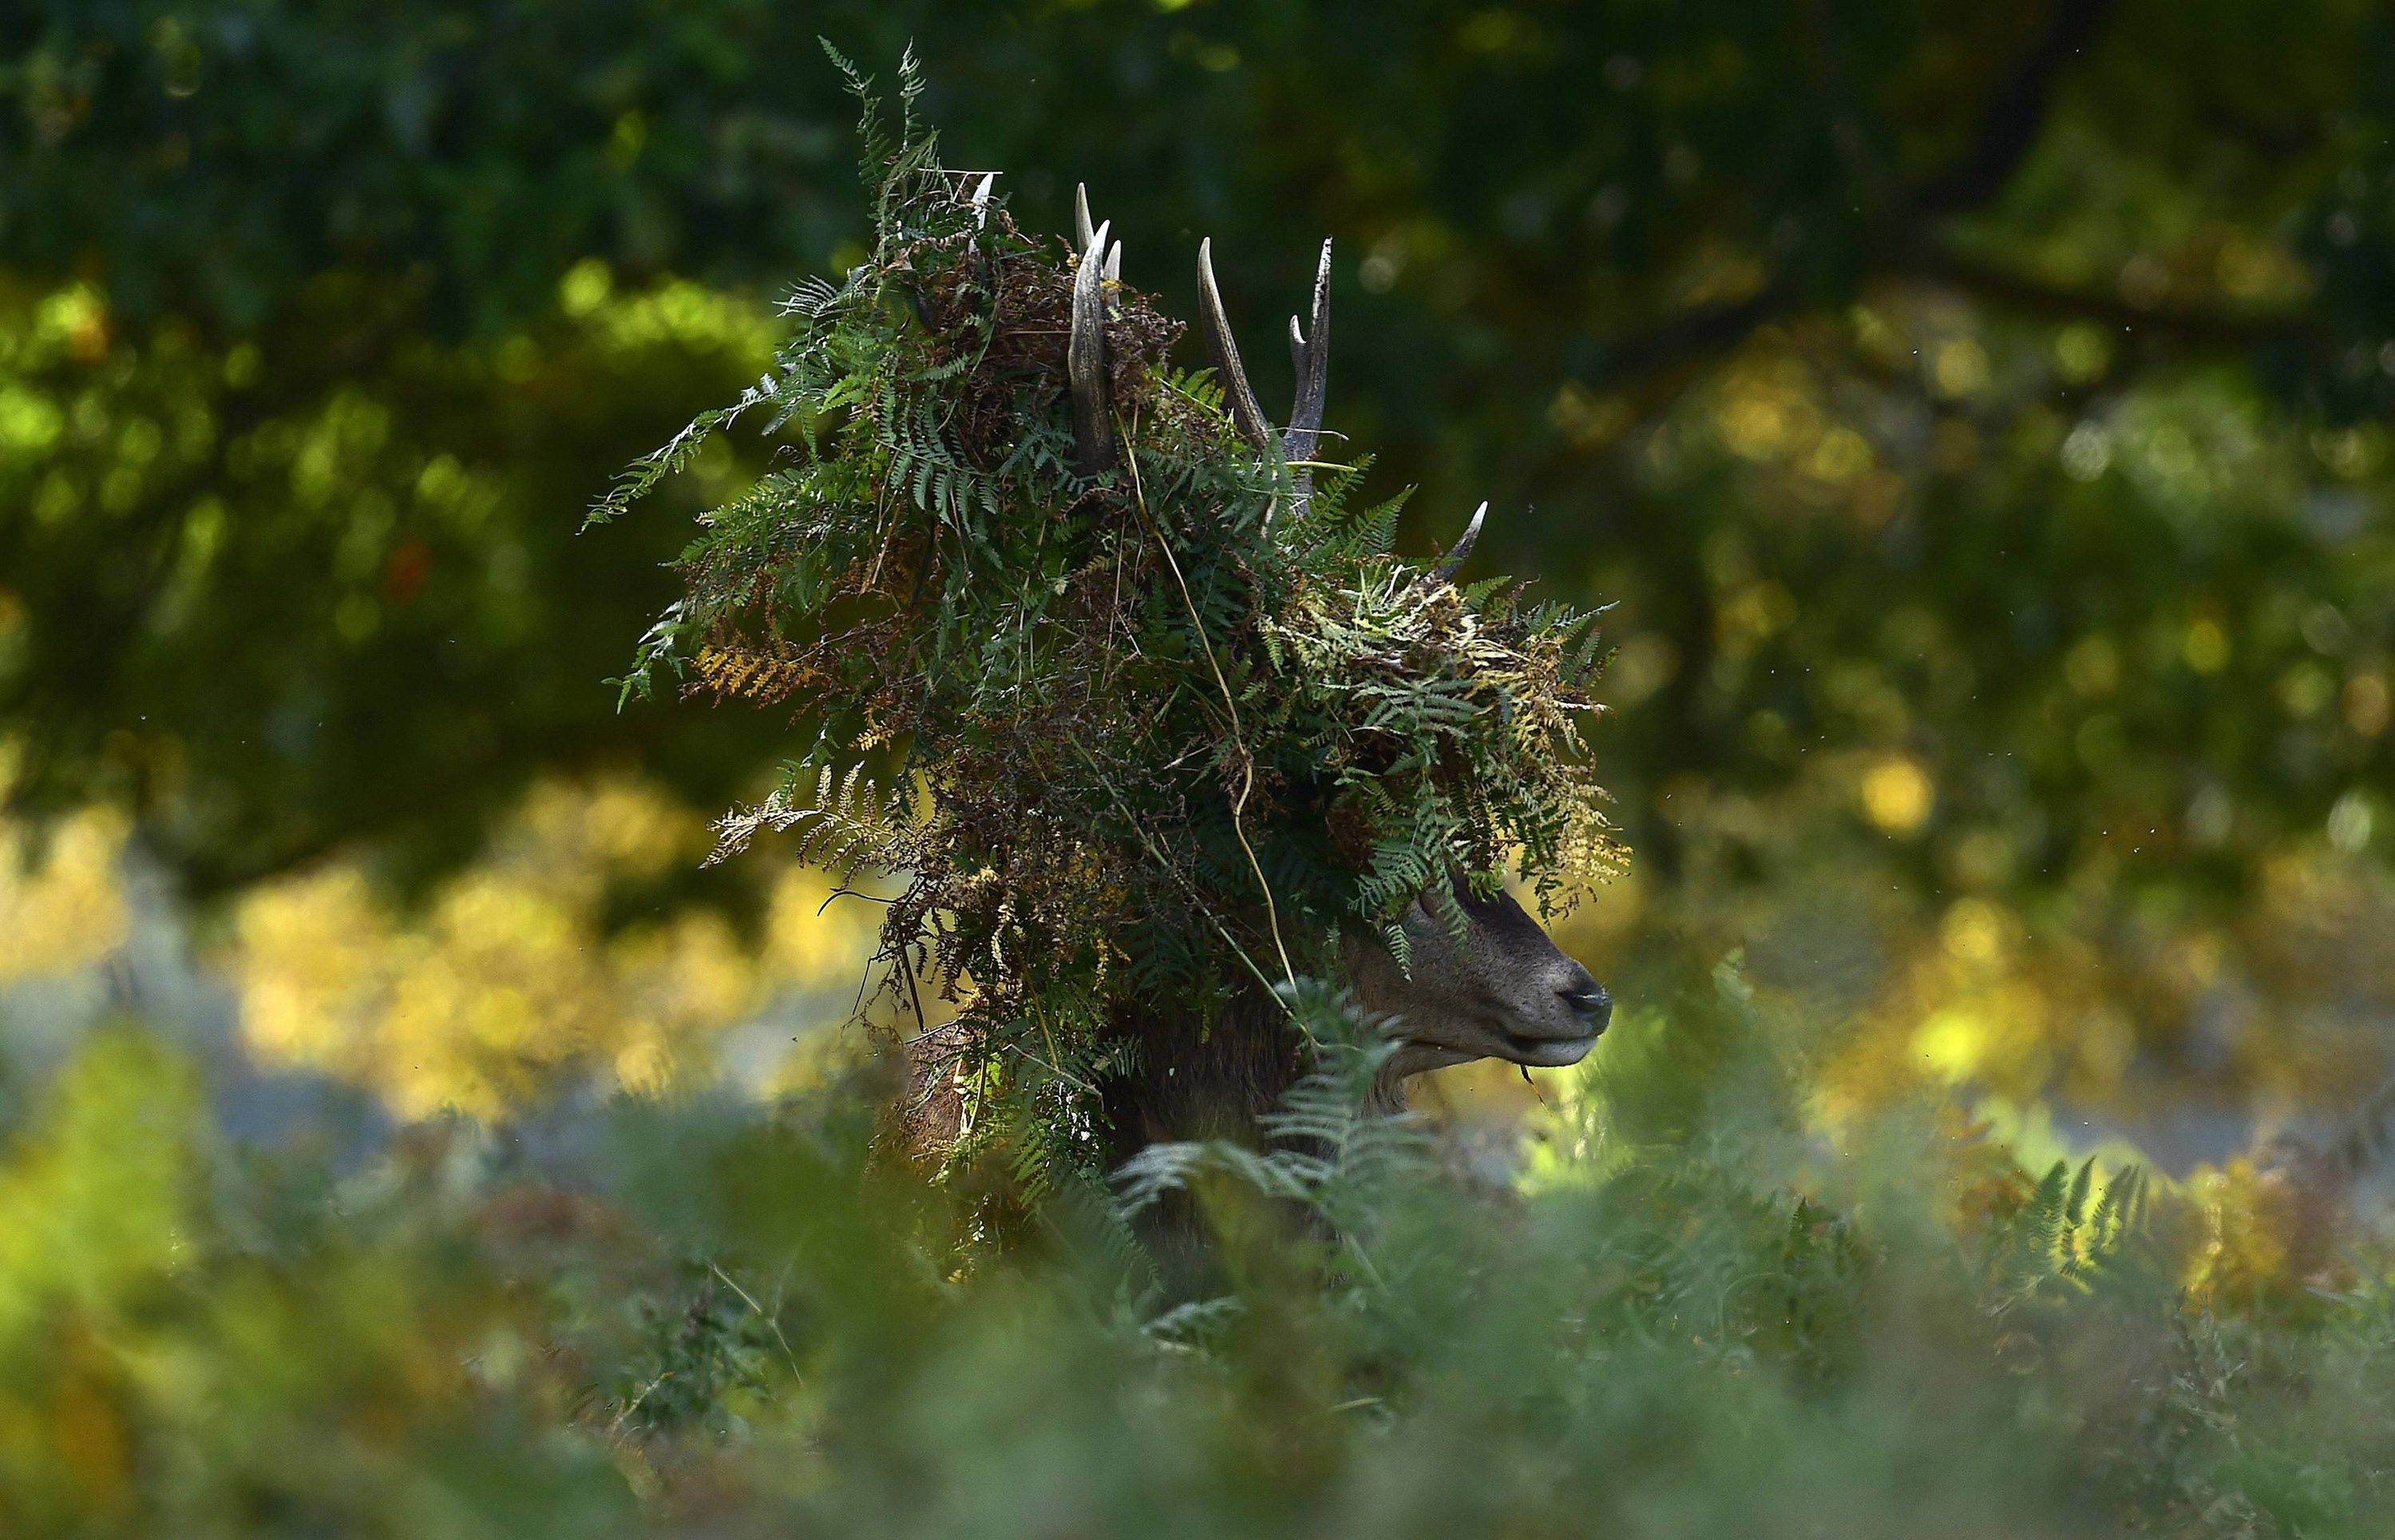 A male red deer with antlers covered in bracken, walks through undergrowth in Richmond Park in south west London, Oct. 3, 2014.